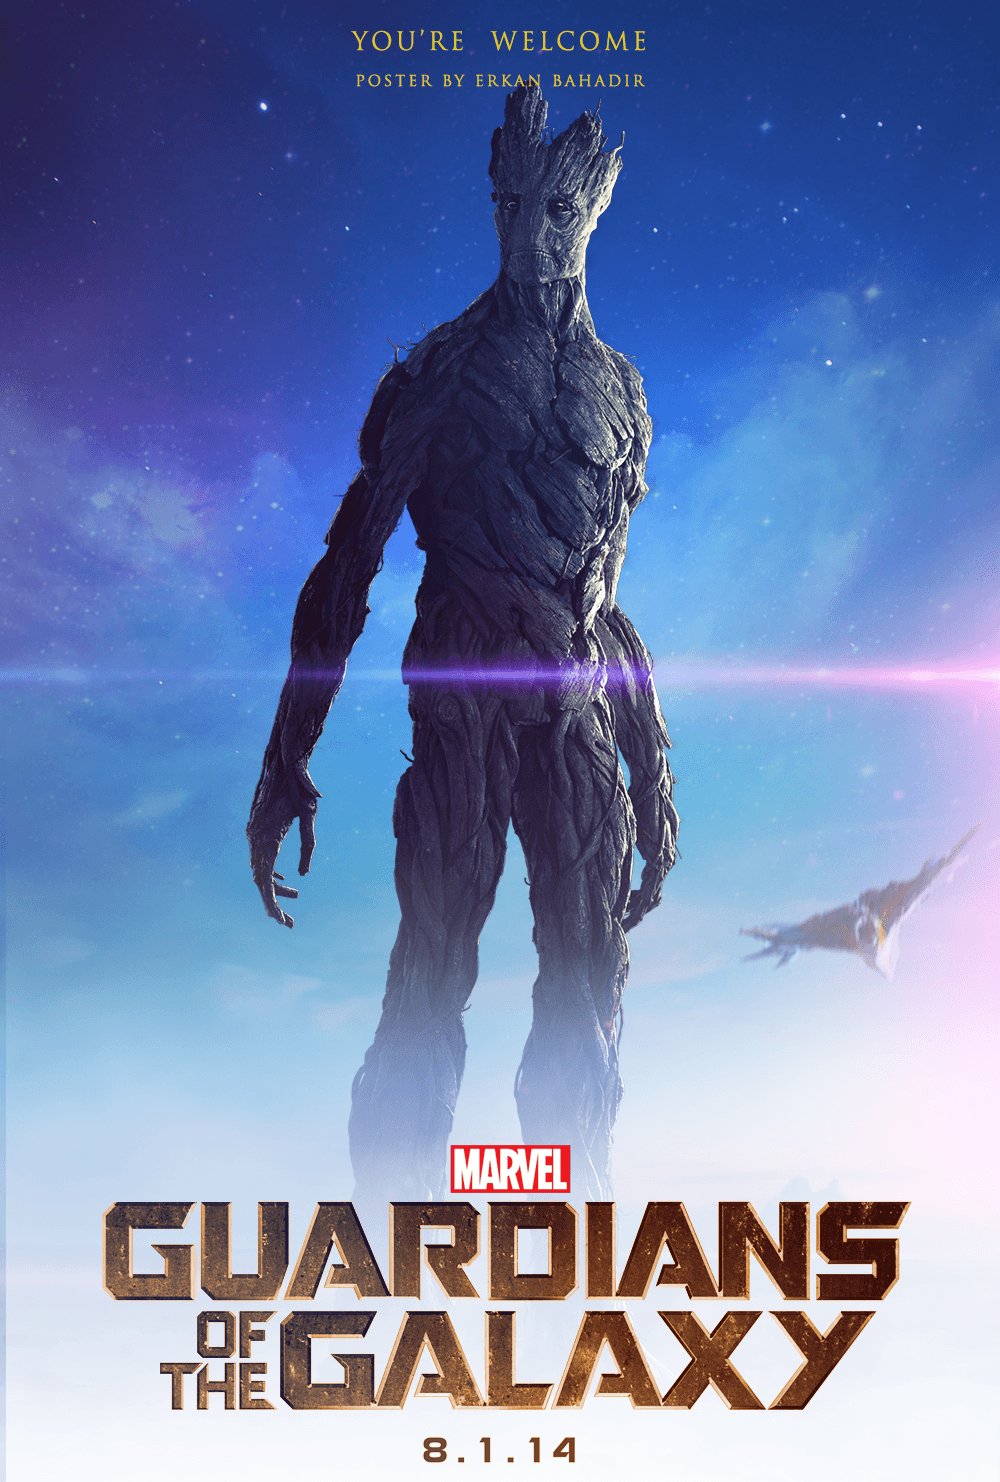 Guardians of the Galaxy: Groot Poster by erkanbahadir23 on DeviantArt